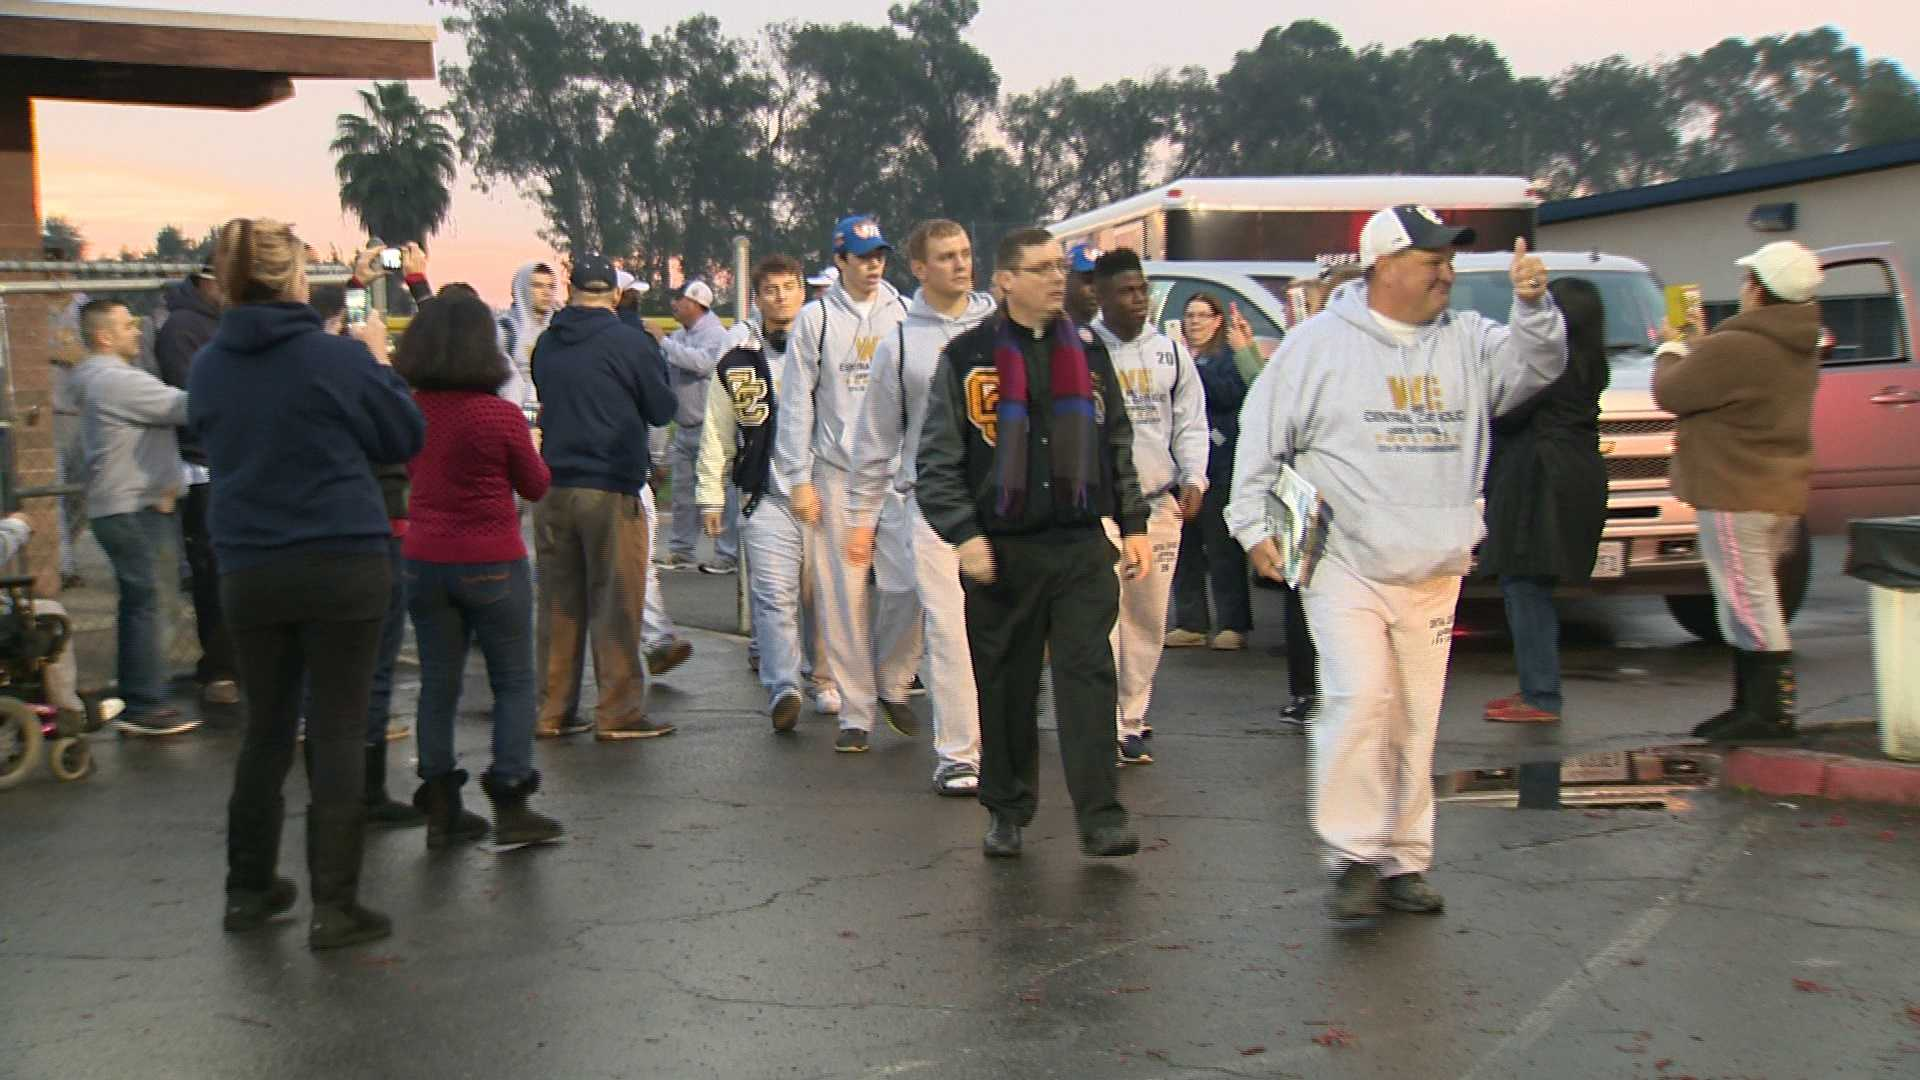 Central Catholic players and coaches loaded onto buses headed for Southern California early Thursday morning ahead of their CIF state championship game against St. Margaret's High School. (Dec. 18, 2014)